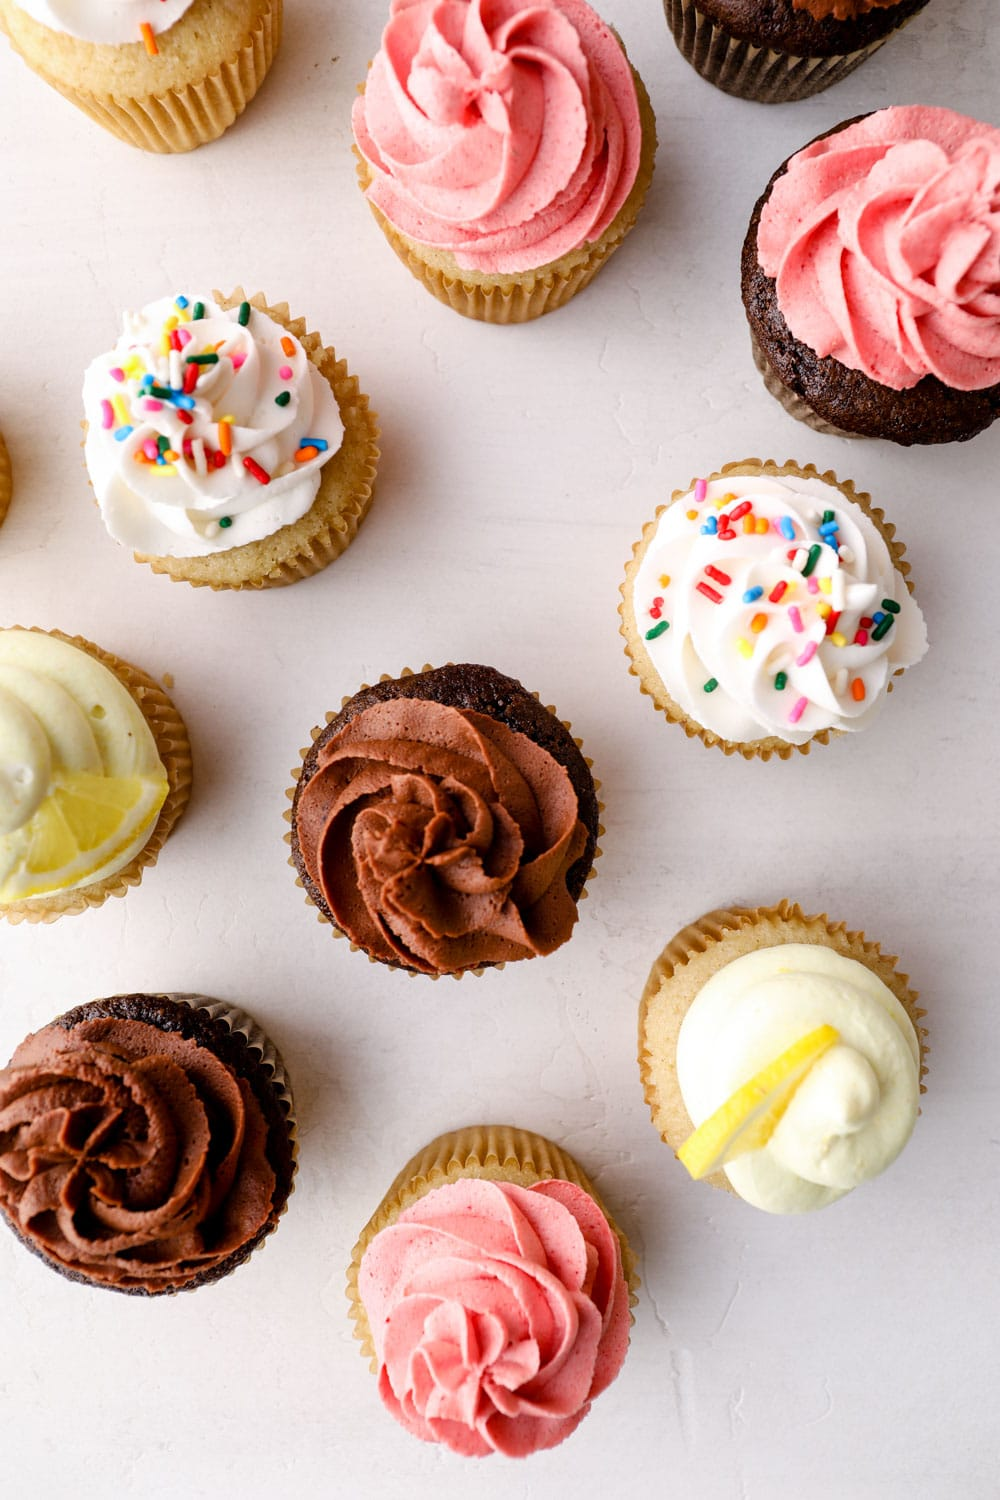 Vegan buttercream on a variety of cupcakes.